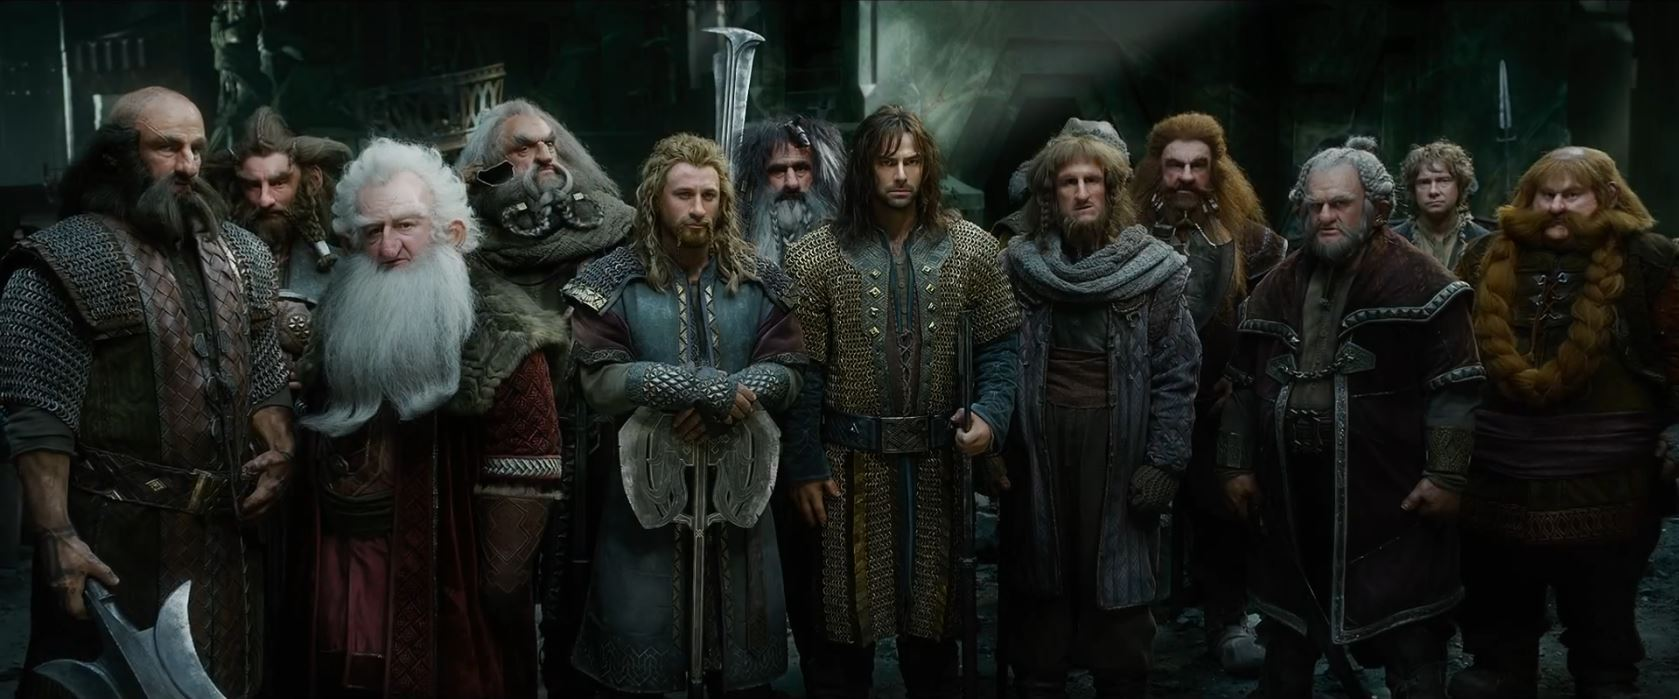 The Hobbit The Battle of the Five Armies Trailer - The Hobbit Dwarve company